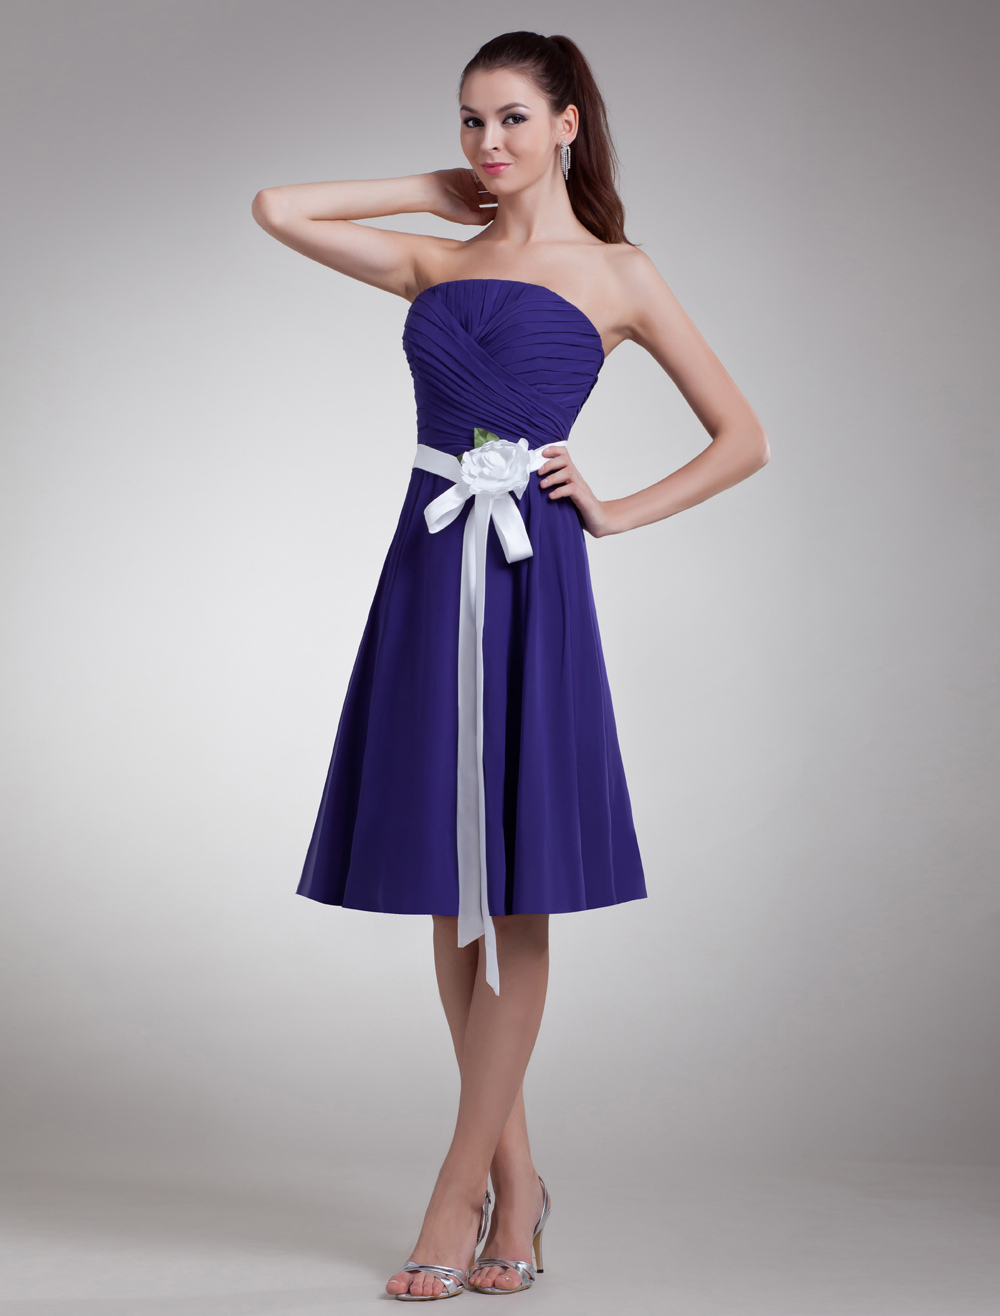 Buy Chiffon Bridesmaid Dress Royal Purple Strapless Short Prom Dress Flower Ribbon Sash Knee Length Cocktail Dress for $90.24 in Milanoo store